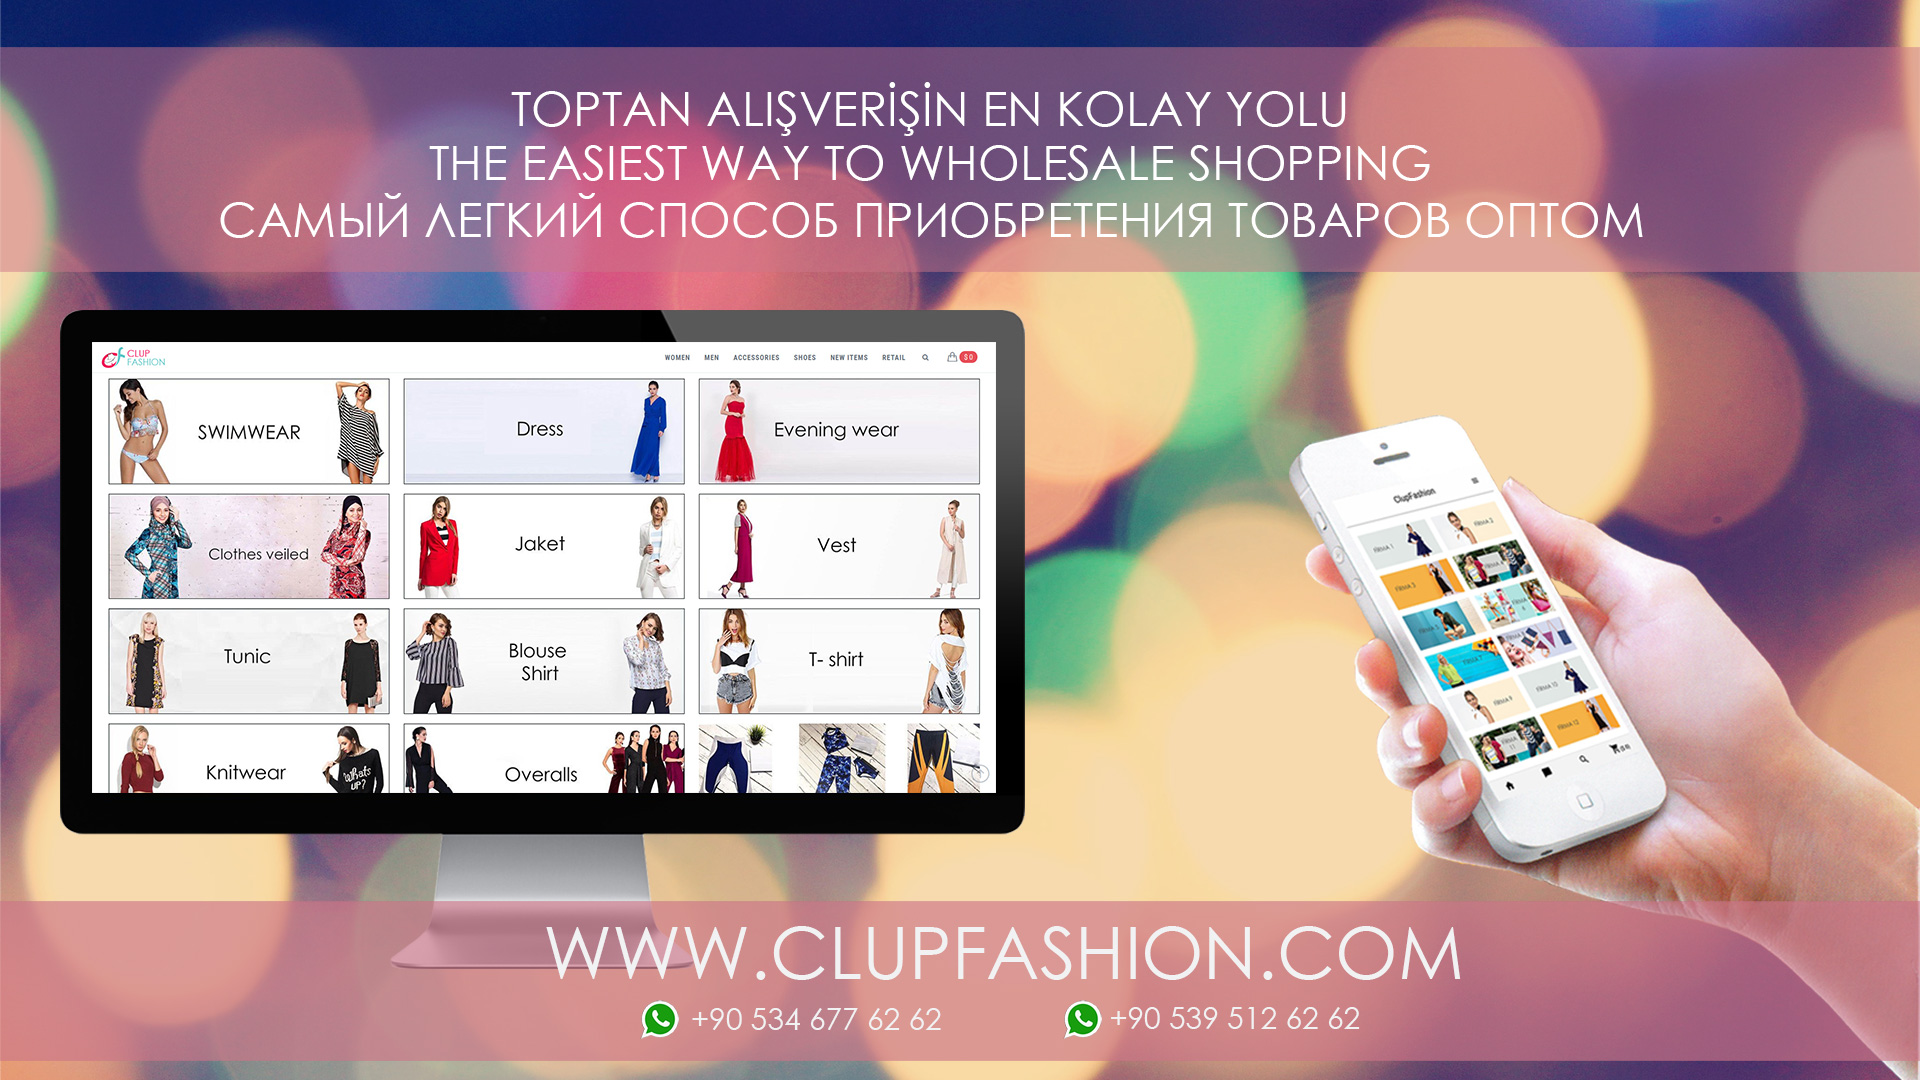 Clup Fashion Kollektion   2016